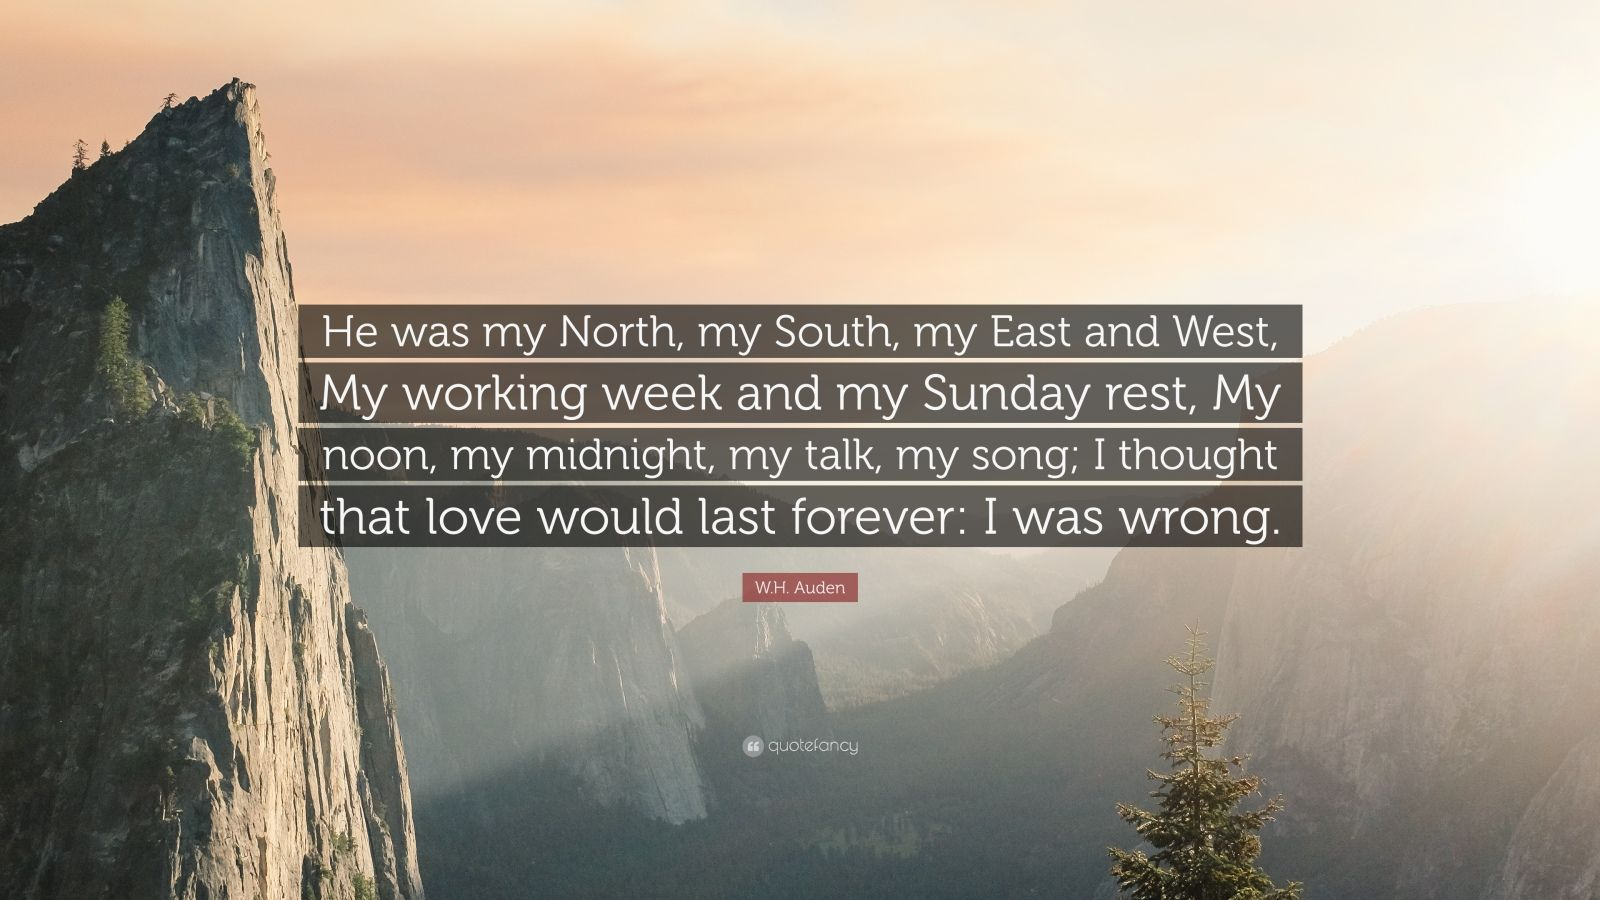 """W.H. Auden Quote: """"He was my North, my South, my East and West, My working week and my Sunday rest, My noon, my midnight, my talk, my song; I thought that love would last forever: I was wrong."""""""